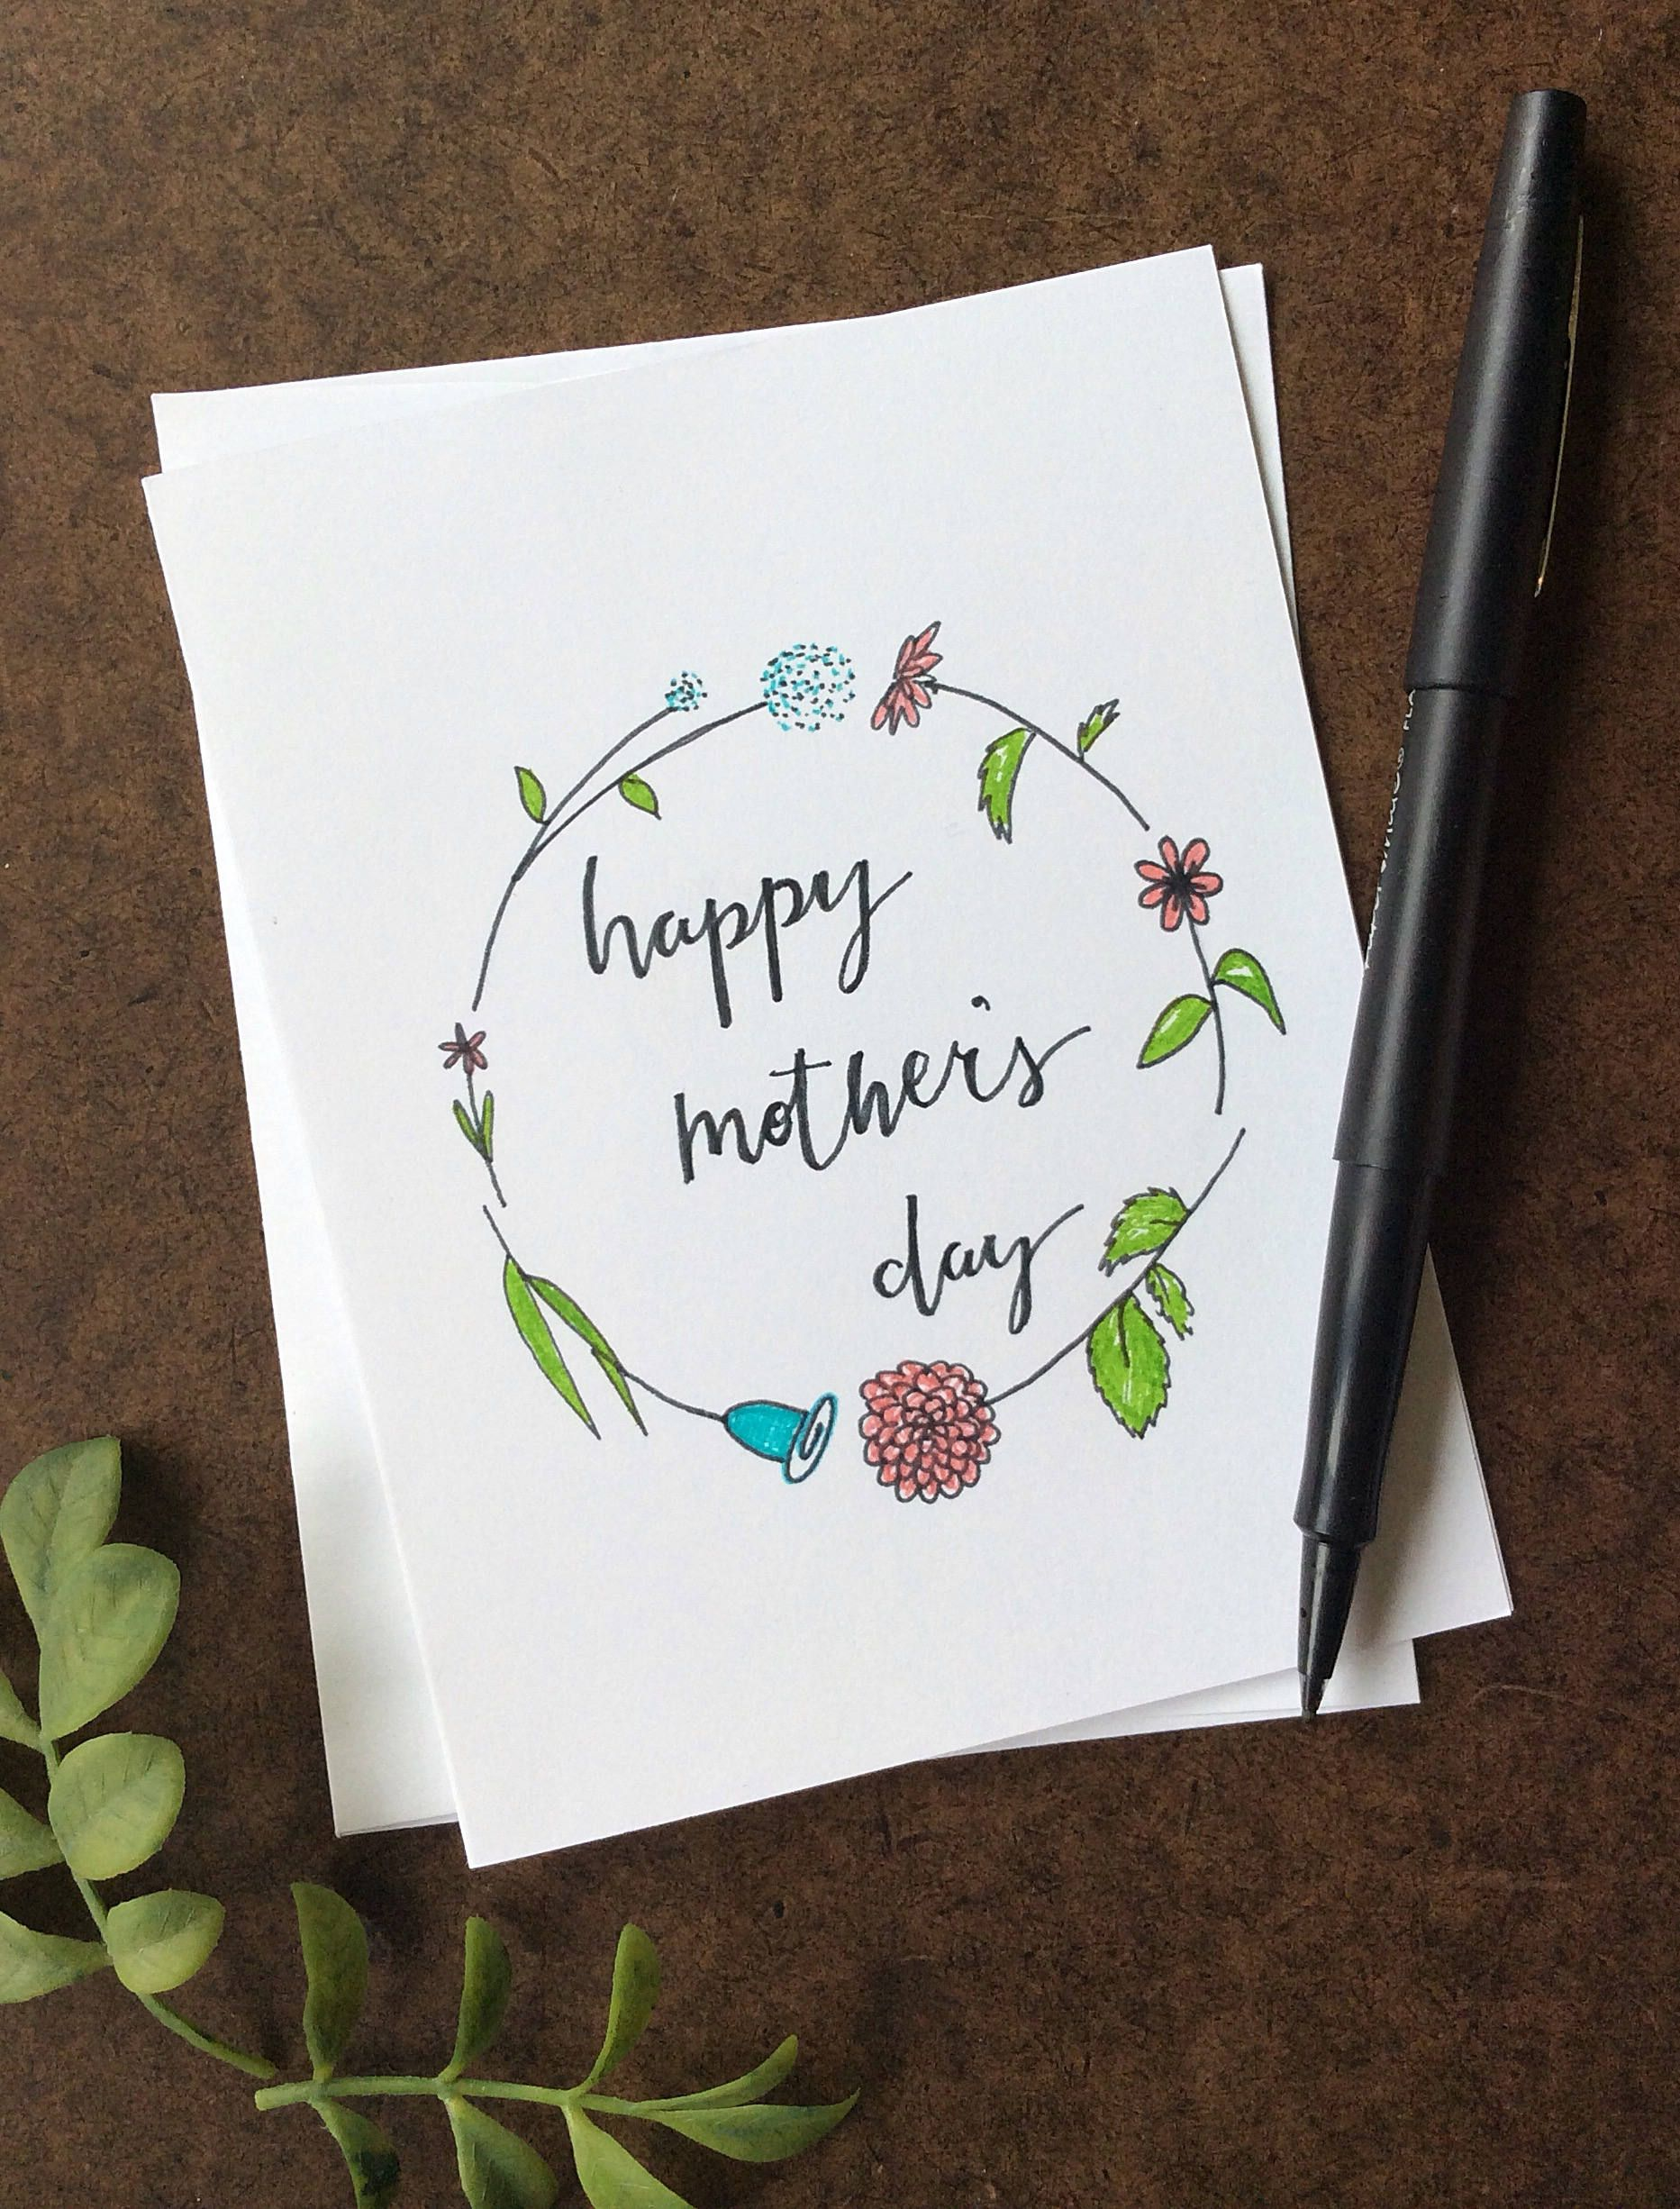 Items similar to Happy Mother's Day: Mother's Day Card, Hand Drawn, Modern, Bohemian, Floral Wreath Card on Etsy